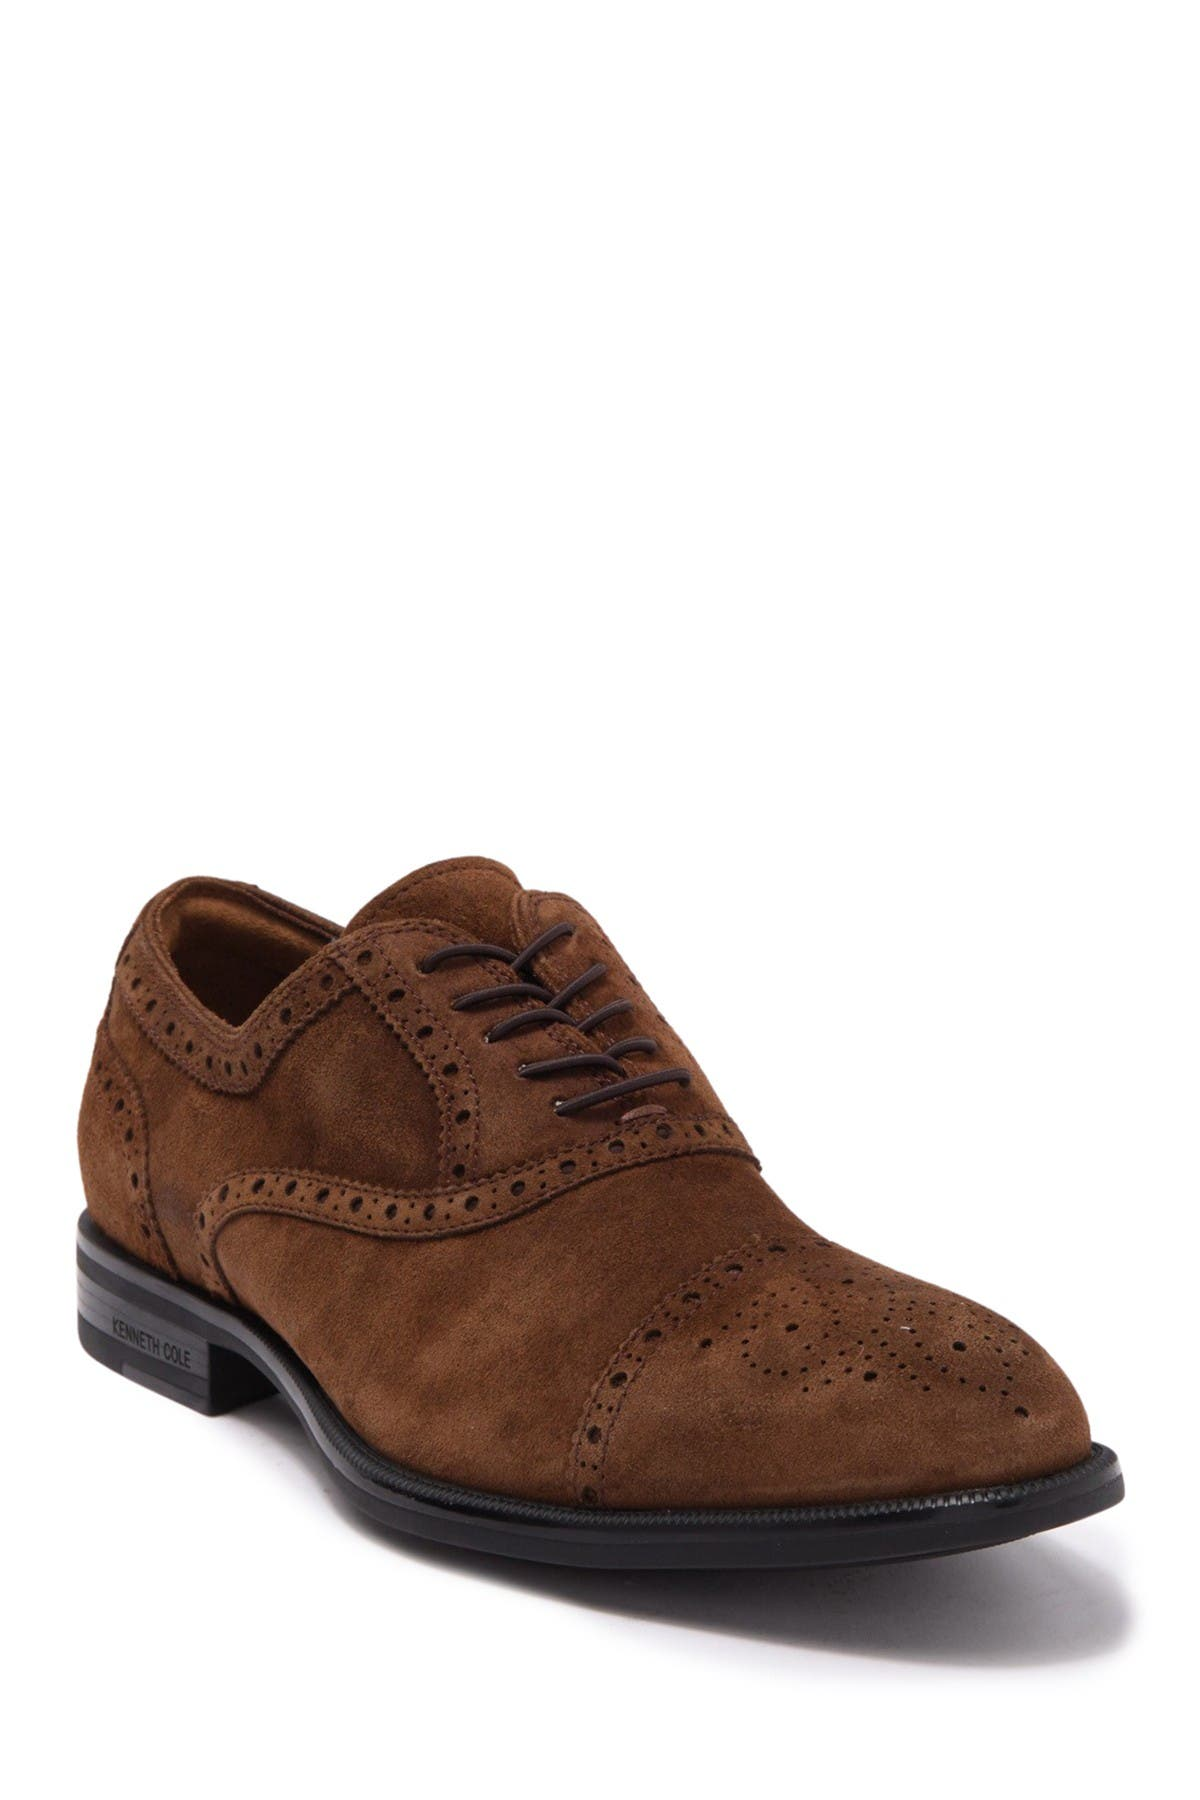 Image of Kenneth Cole New York Perforated Trim Suede Cap Toe Oxford